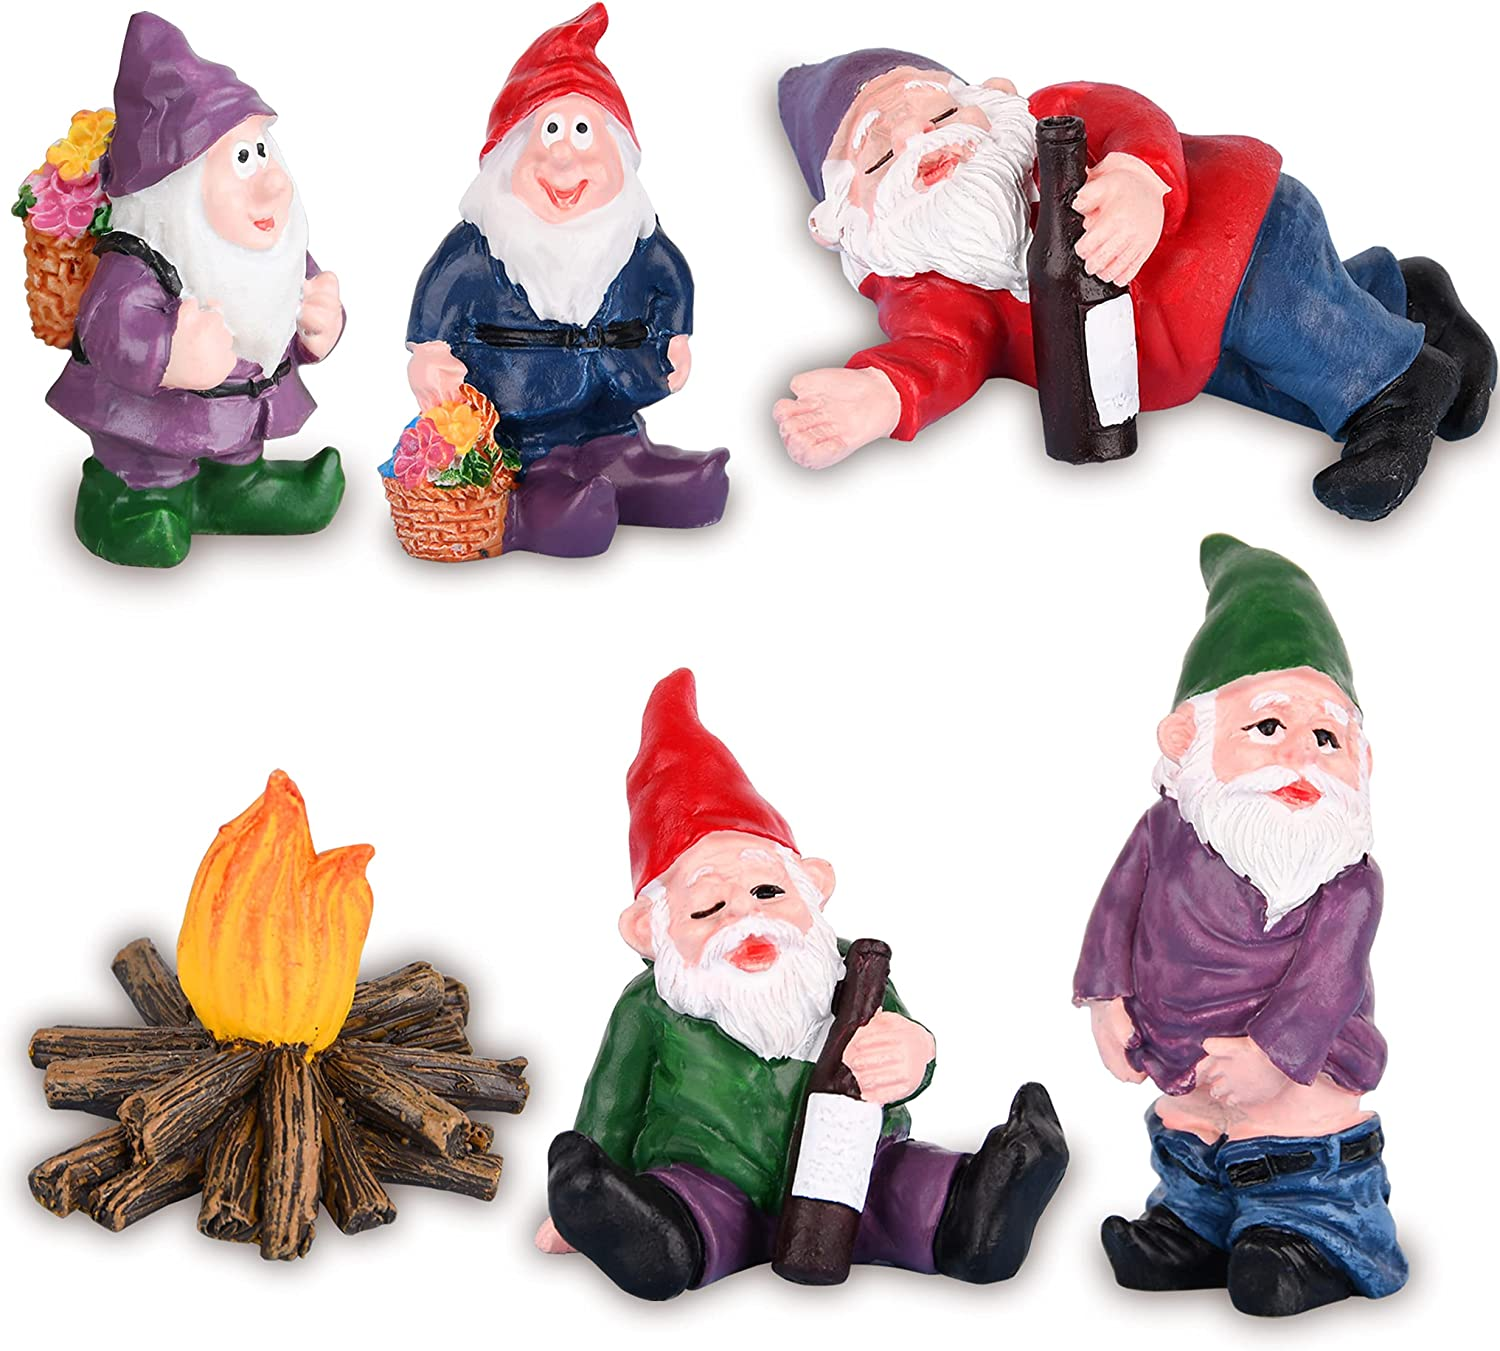 VAINECHAY Outdoor Decor Garden Statues Gnomes - Miniature Fairy Garden Accessories Outdoor Decoration Funny Gnome Statue Garden Miniatures Figurines Home Ornaments Outside Yard Lawn Decor Gifts